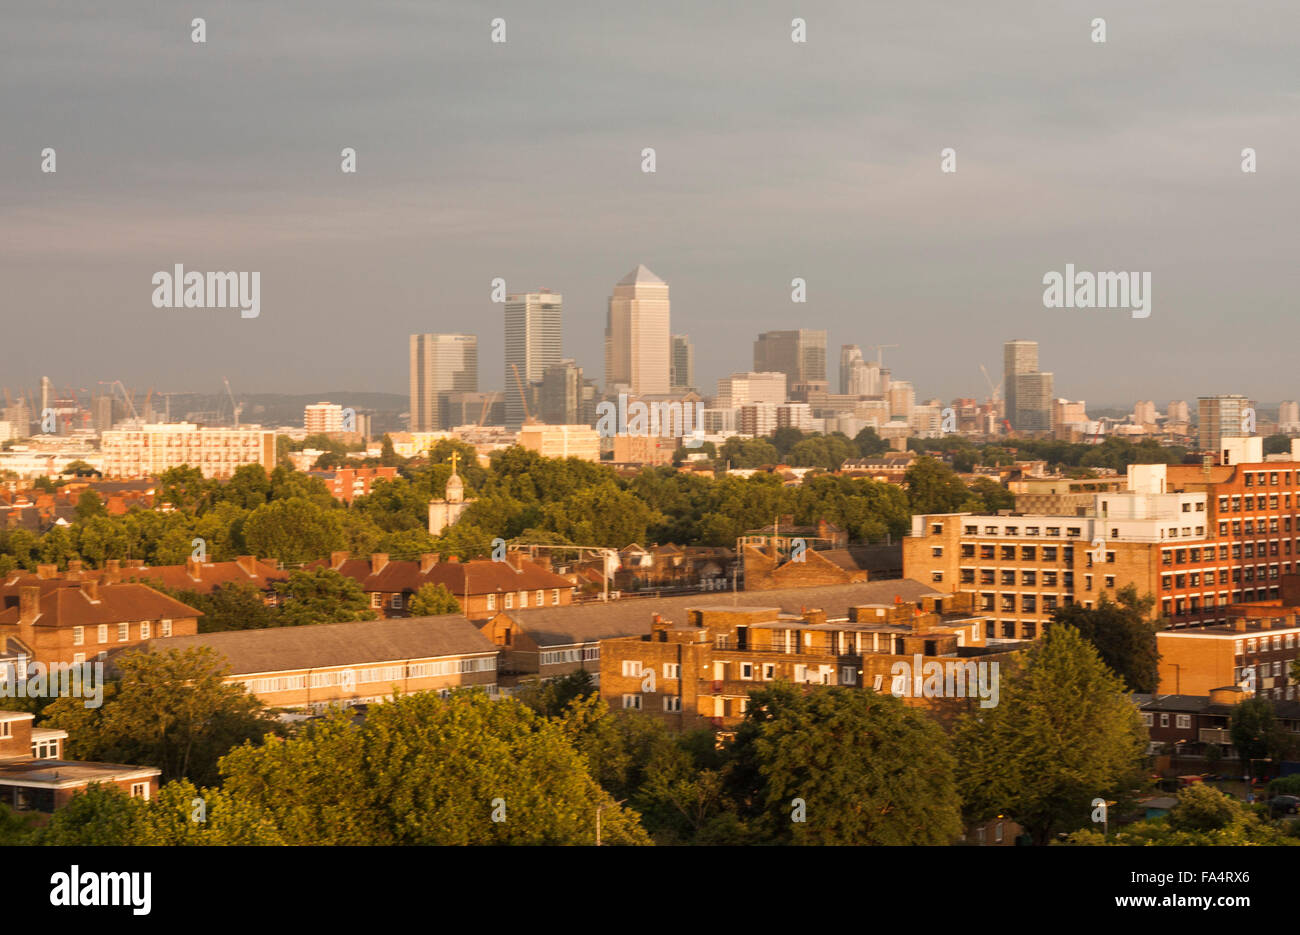 A rooftop view of the London city skyline around Canary Wharf - Stock Image